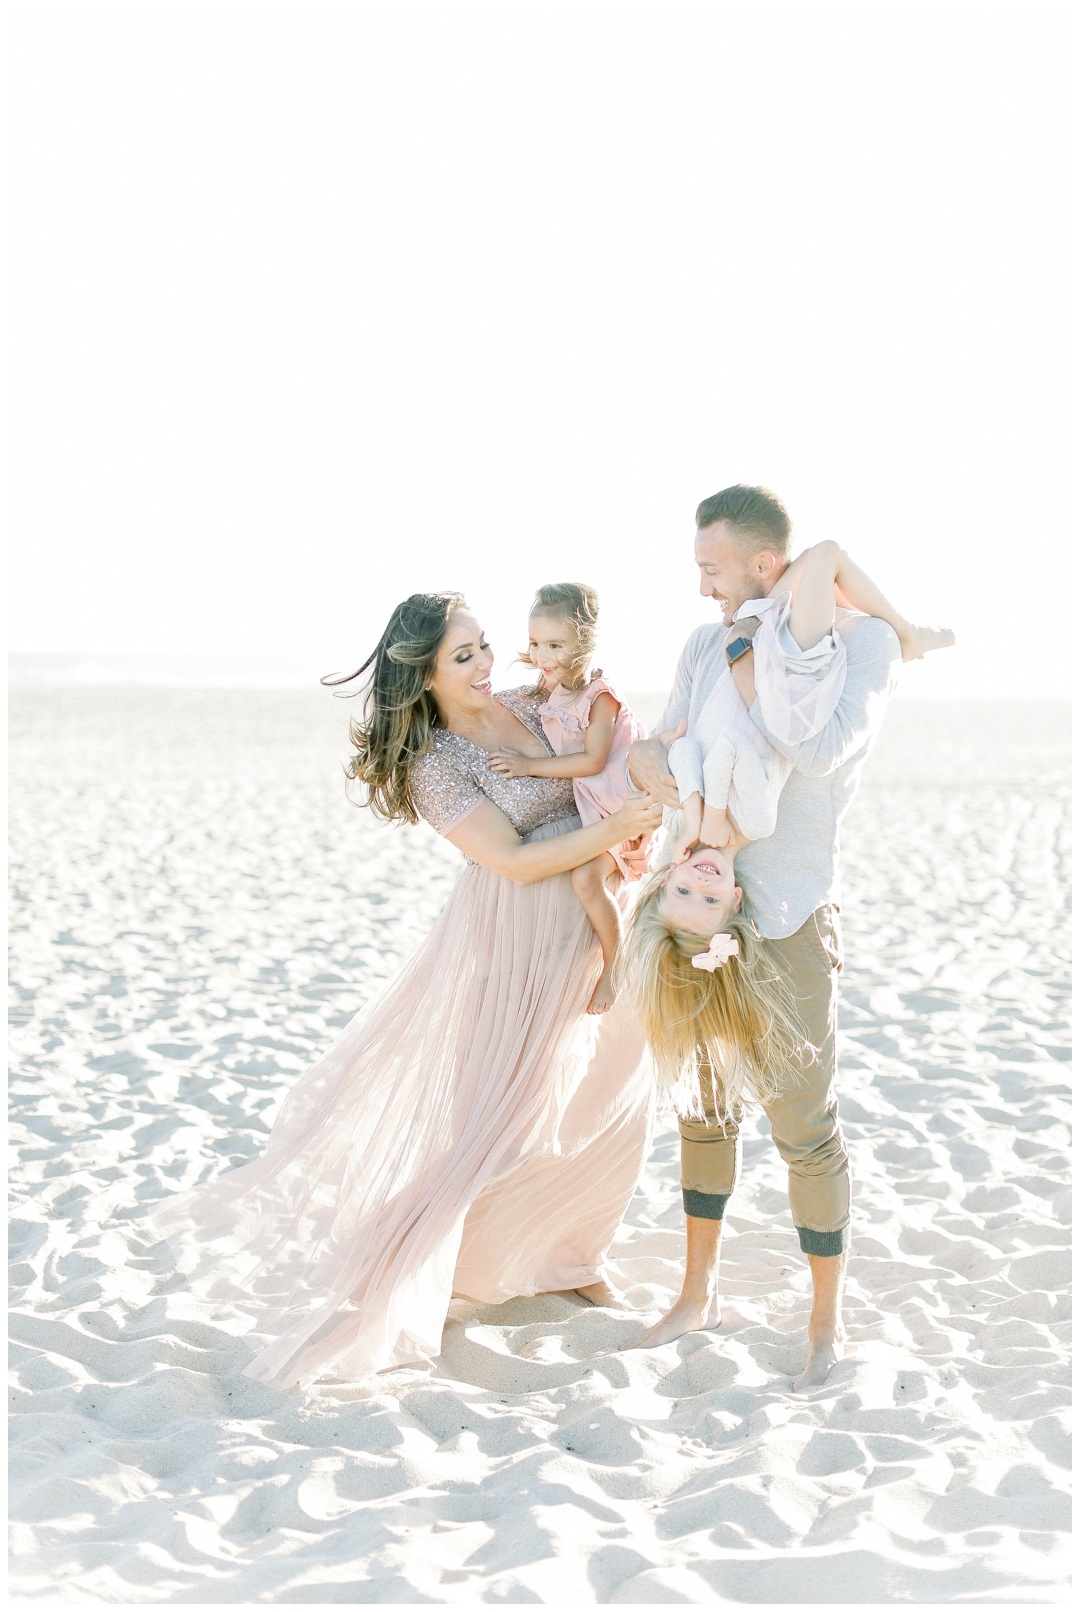 Newport_Beach_Maternity_Photographer_Newport_Beach_Newborn_Photography_Orange_County_Newborn_Photographer_Cori_Kleckner_Photography_Orange_County_in-home_Photography__2109.jpg